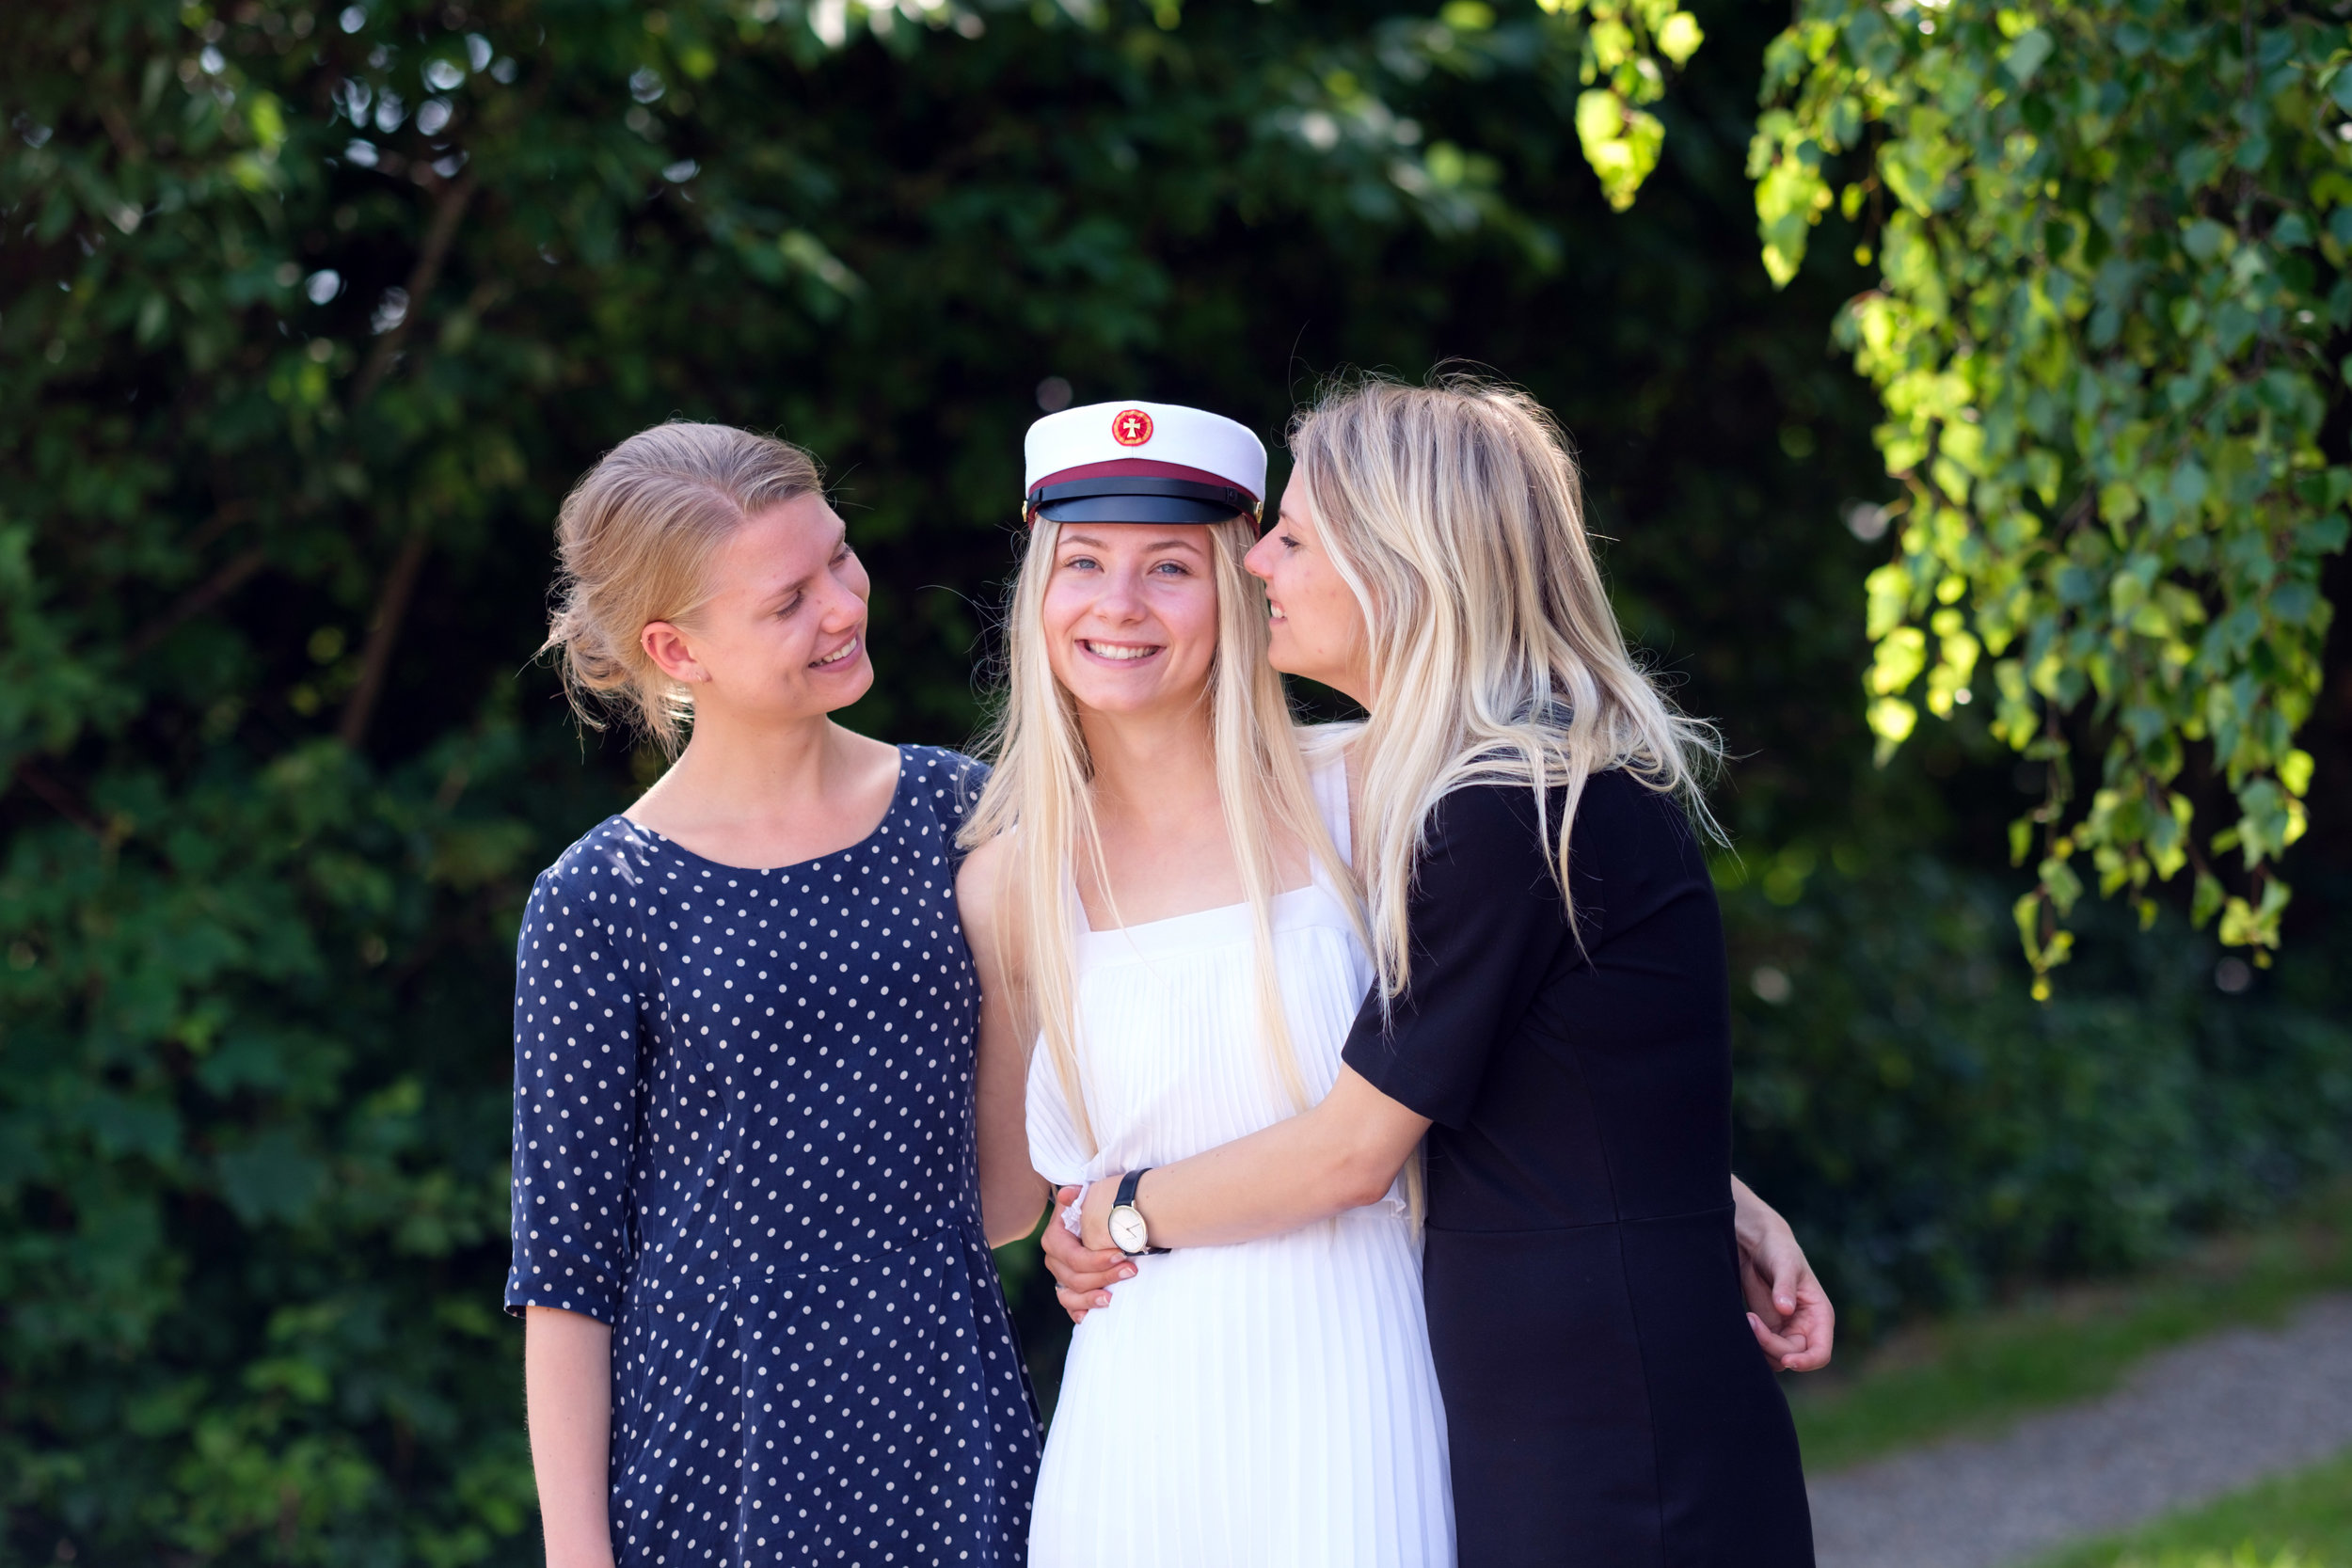 Laura and Emilie celebrate Sofie's graduation day